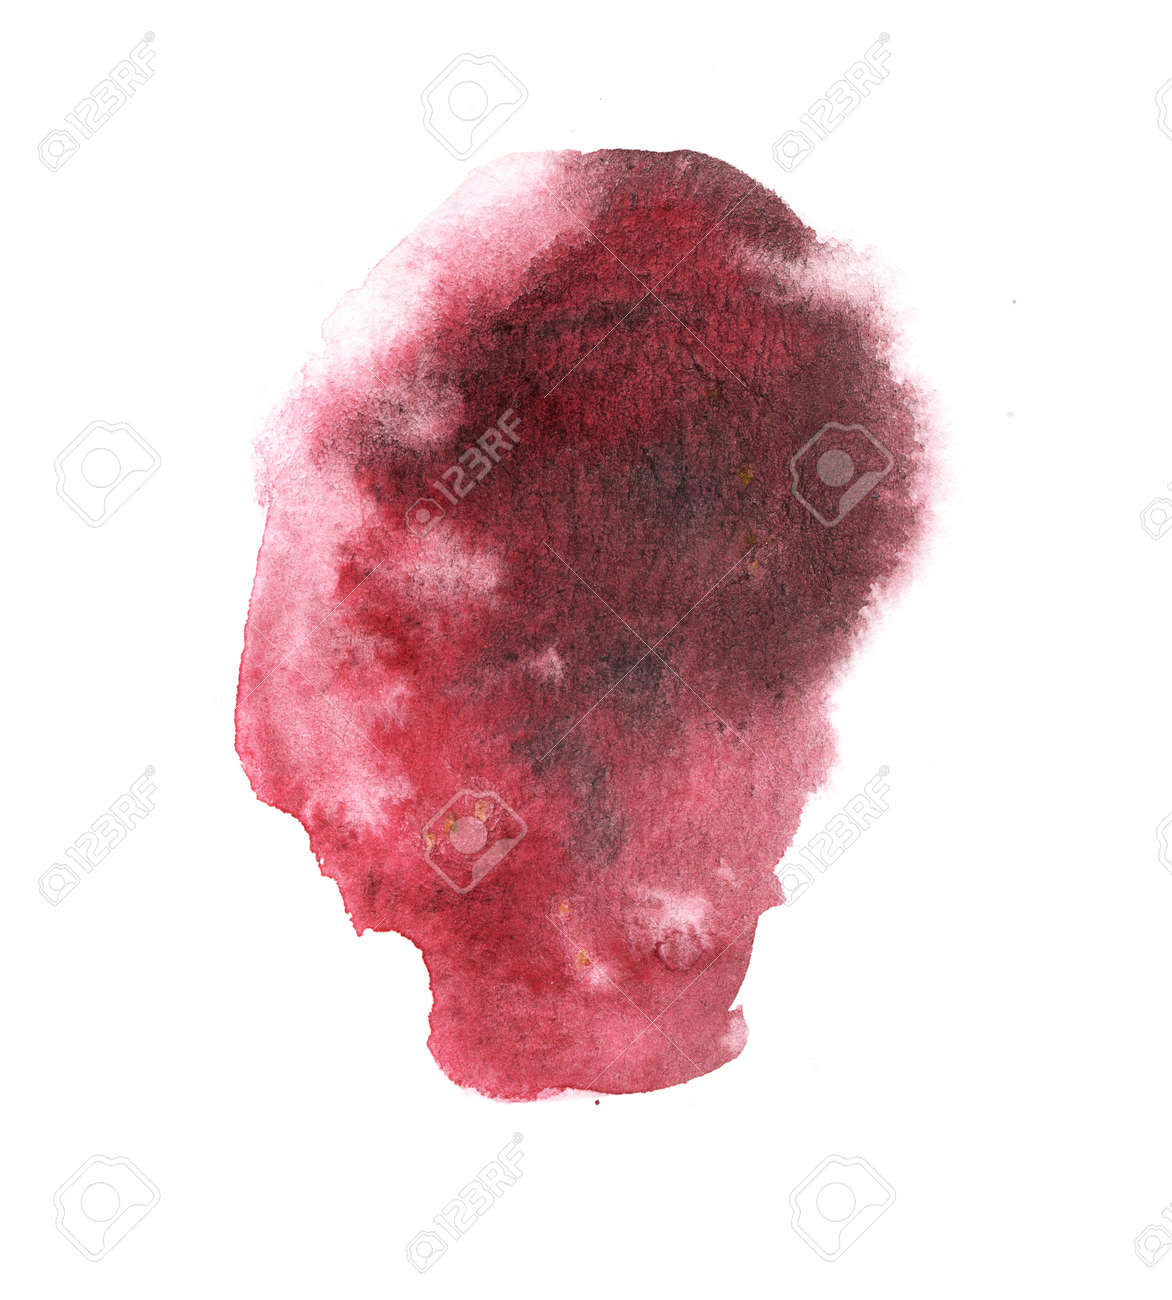 Bright red watercolor stain with watercolor paint stroke - 163875477